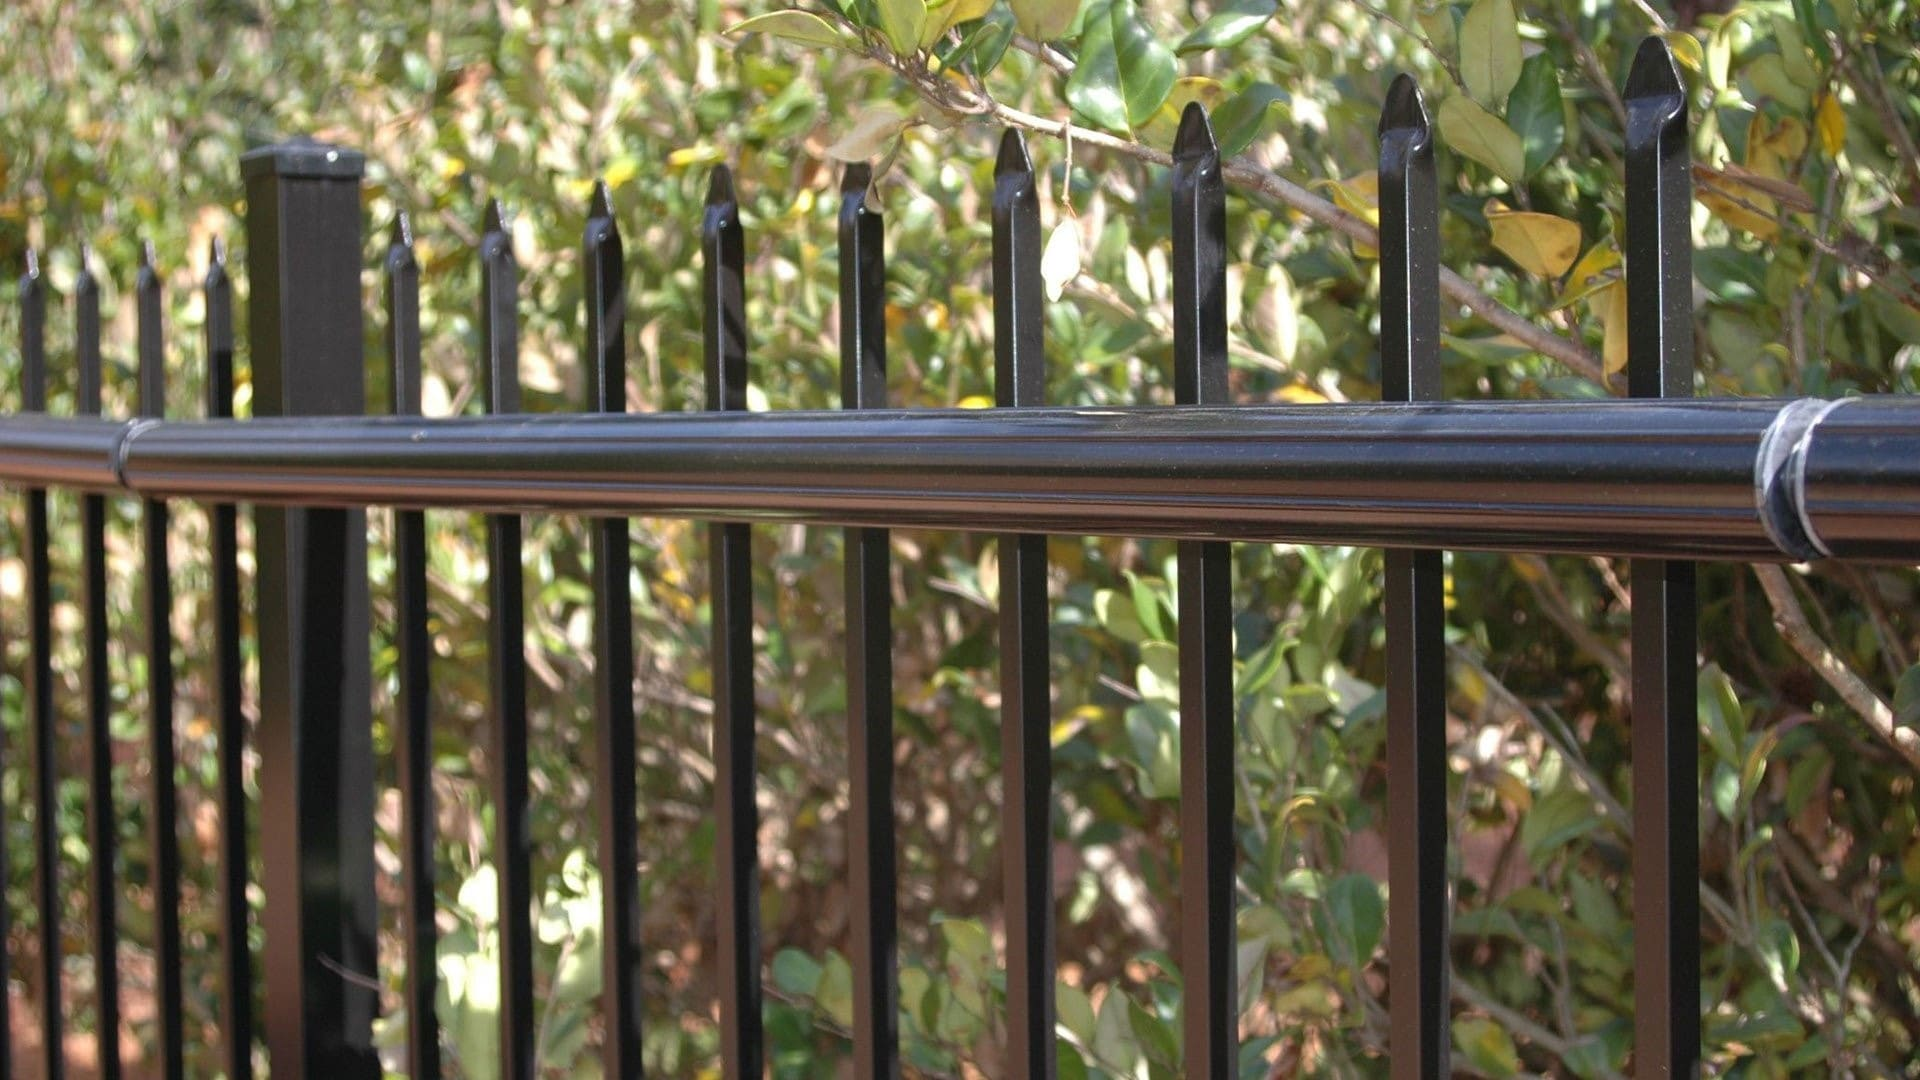 10. Simphome.com Coyote Roller for the Top of a Fence